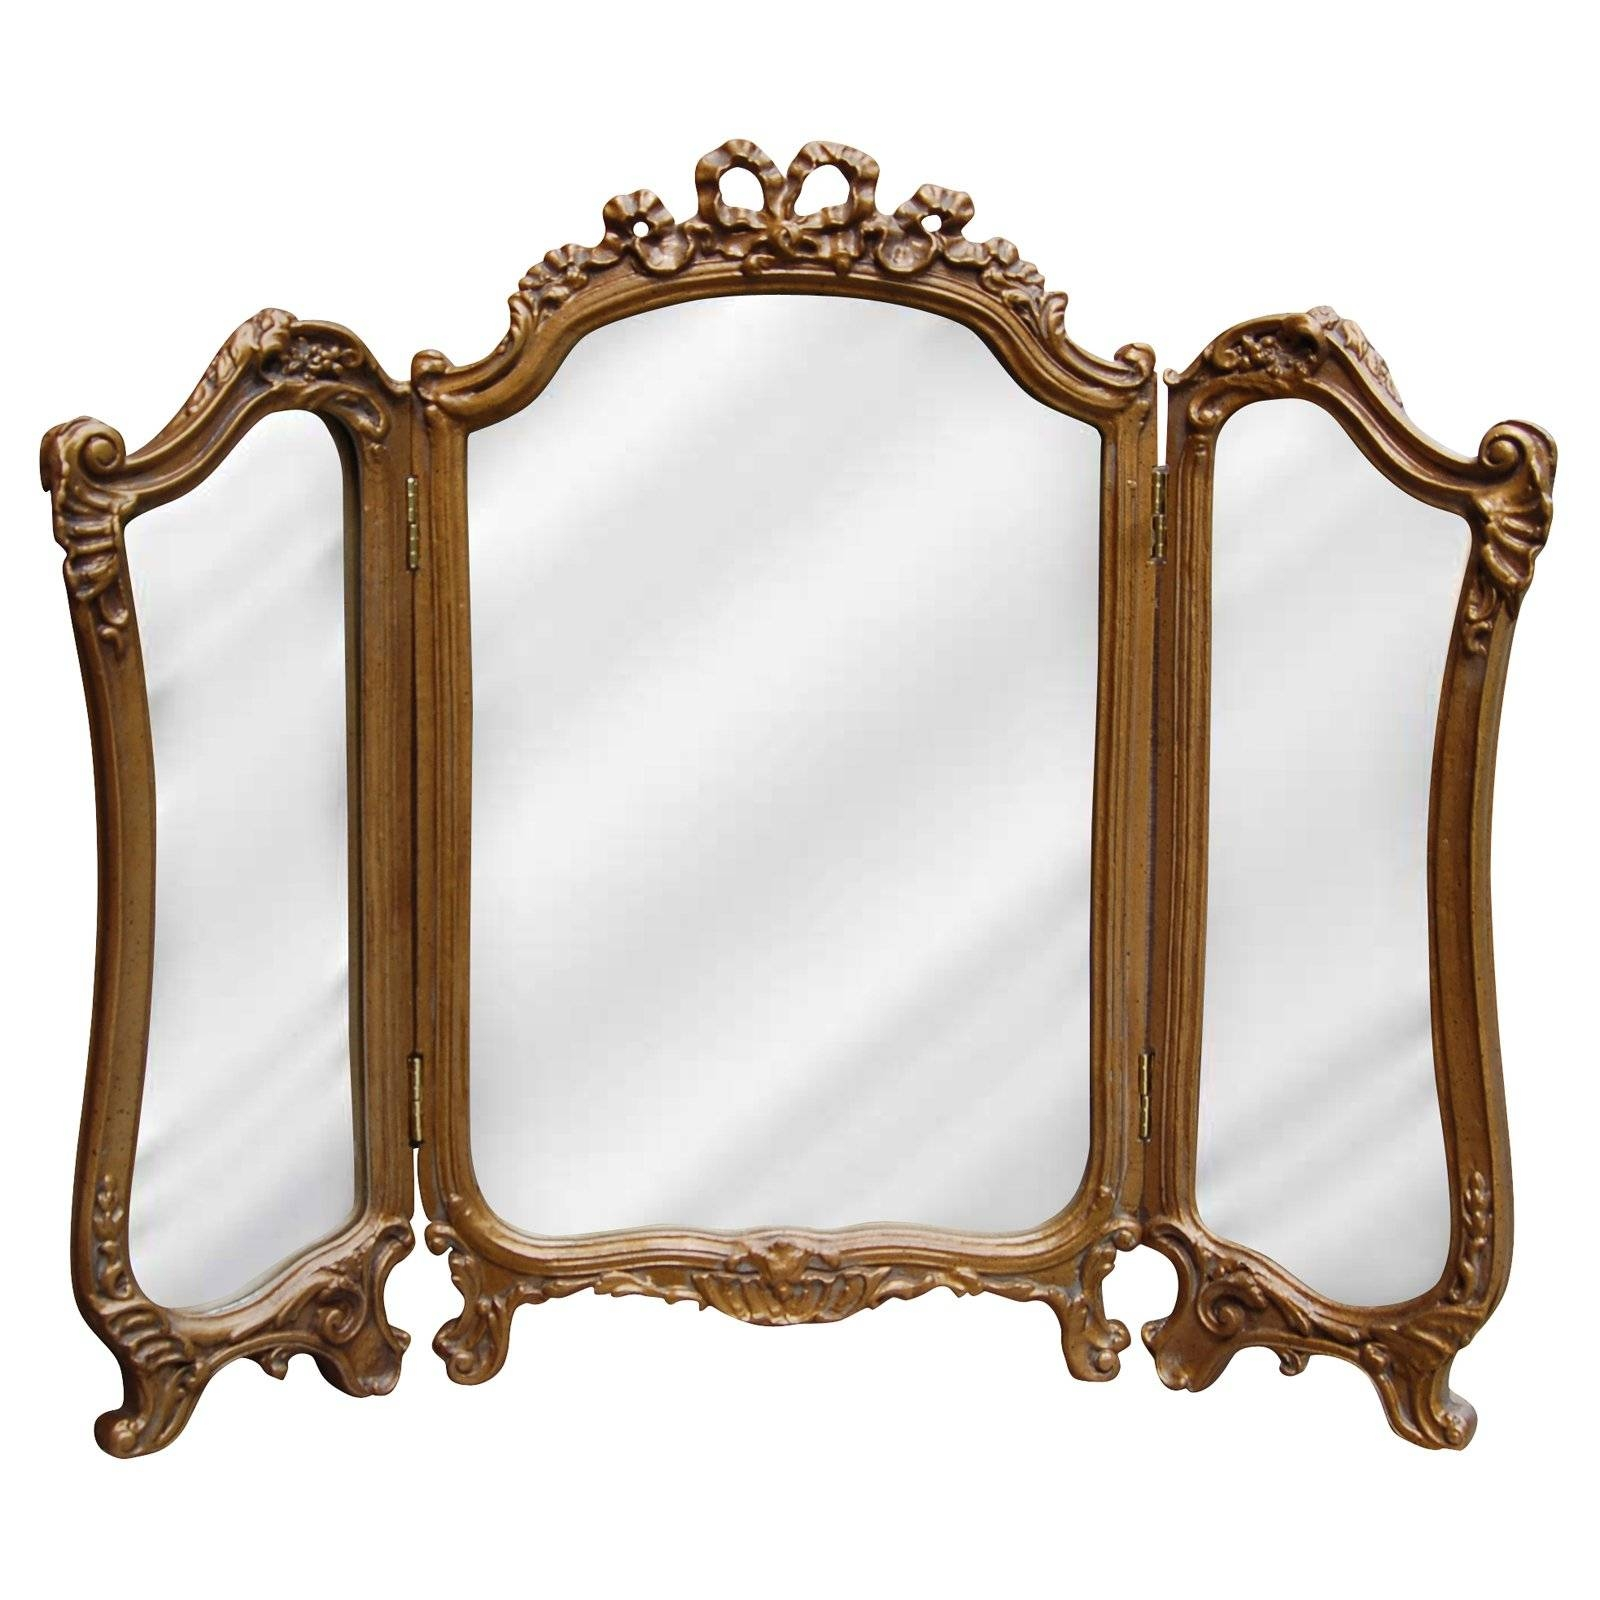 Mirrors - Walmart pertaining to Long Oval Mirrors (Image 10 of 15)